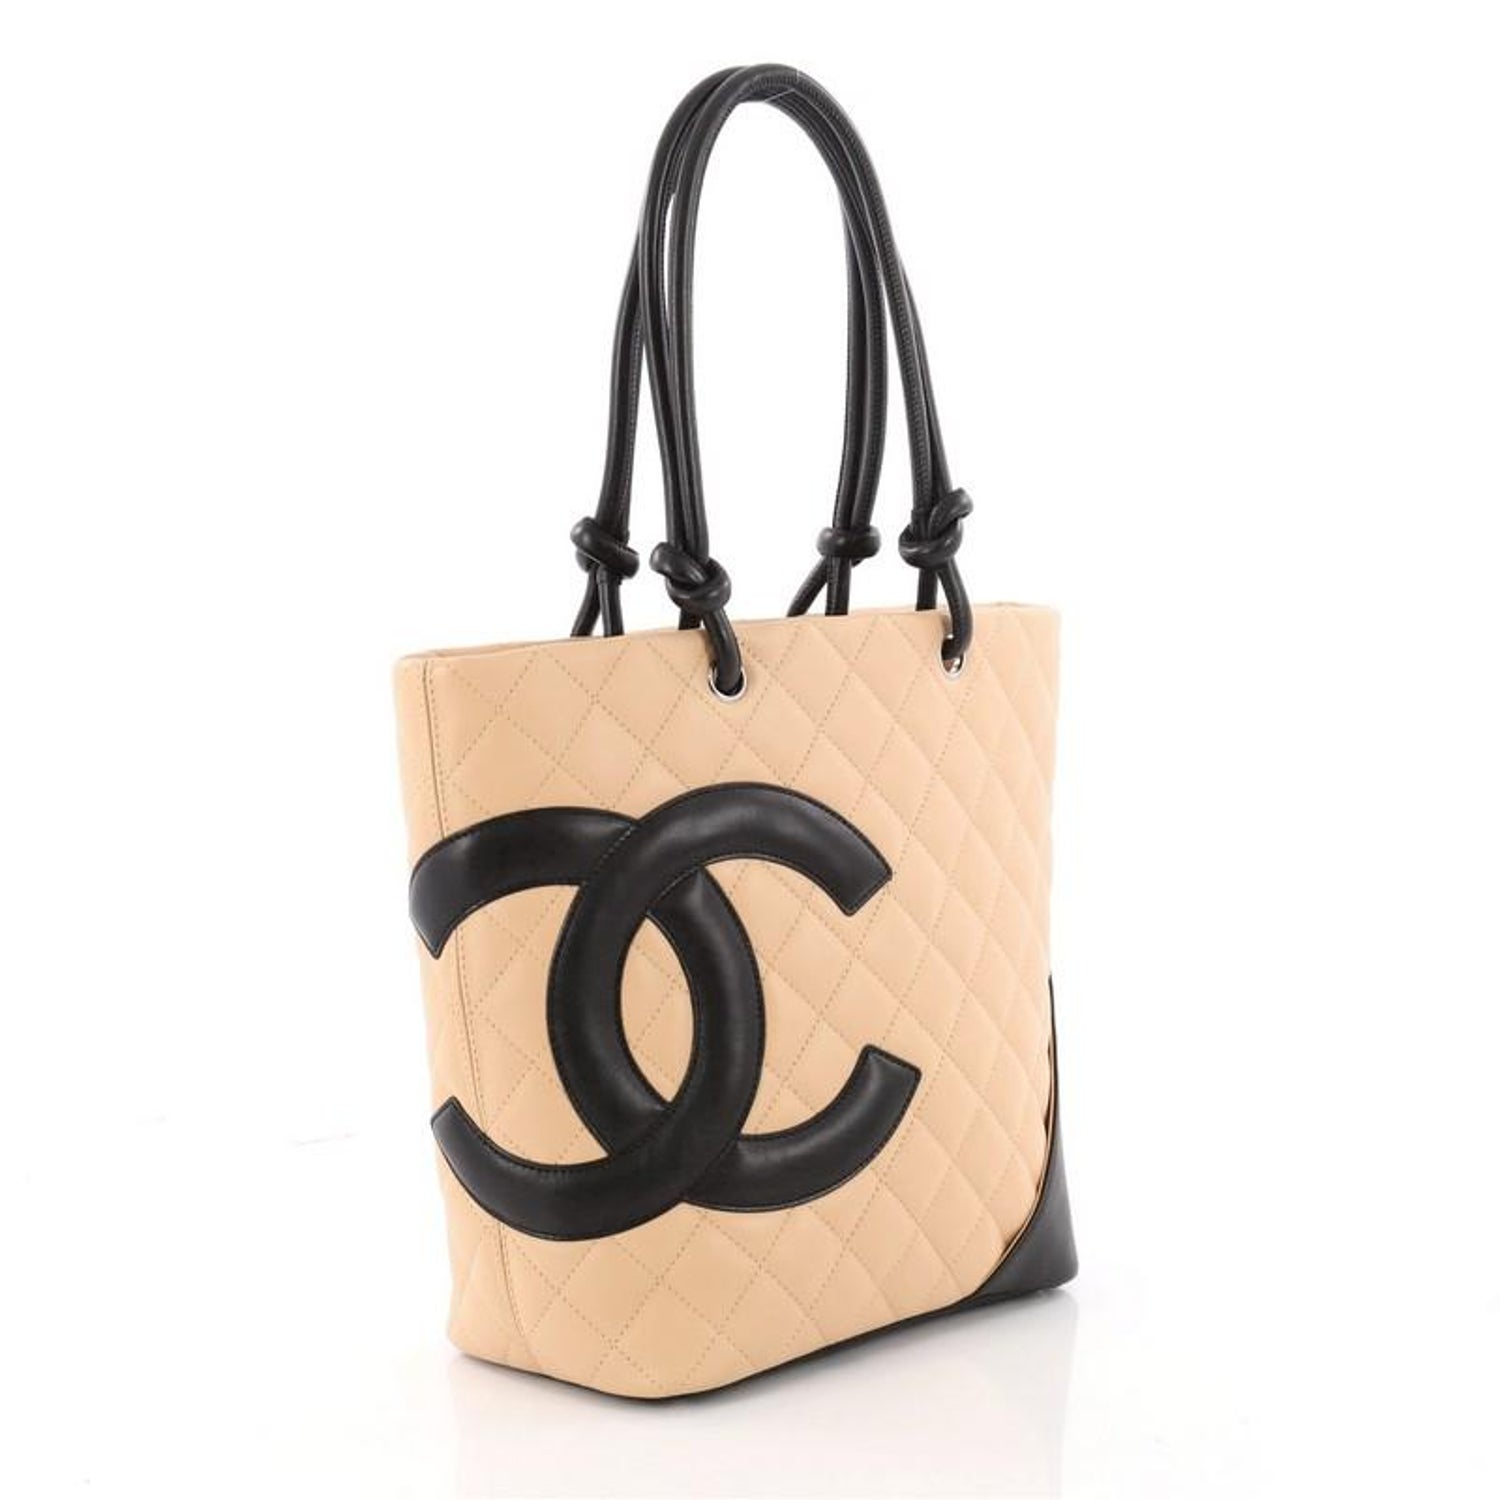 521610c5c84d87 Chanel Cambon Tote Quilted Leather Medium at 1stdibs